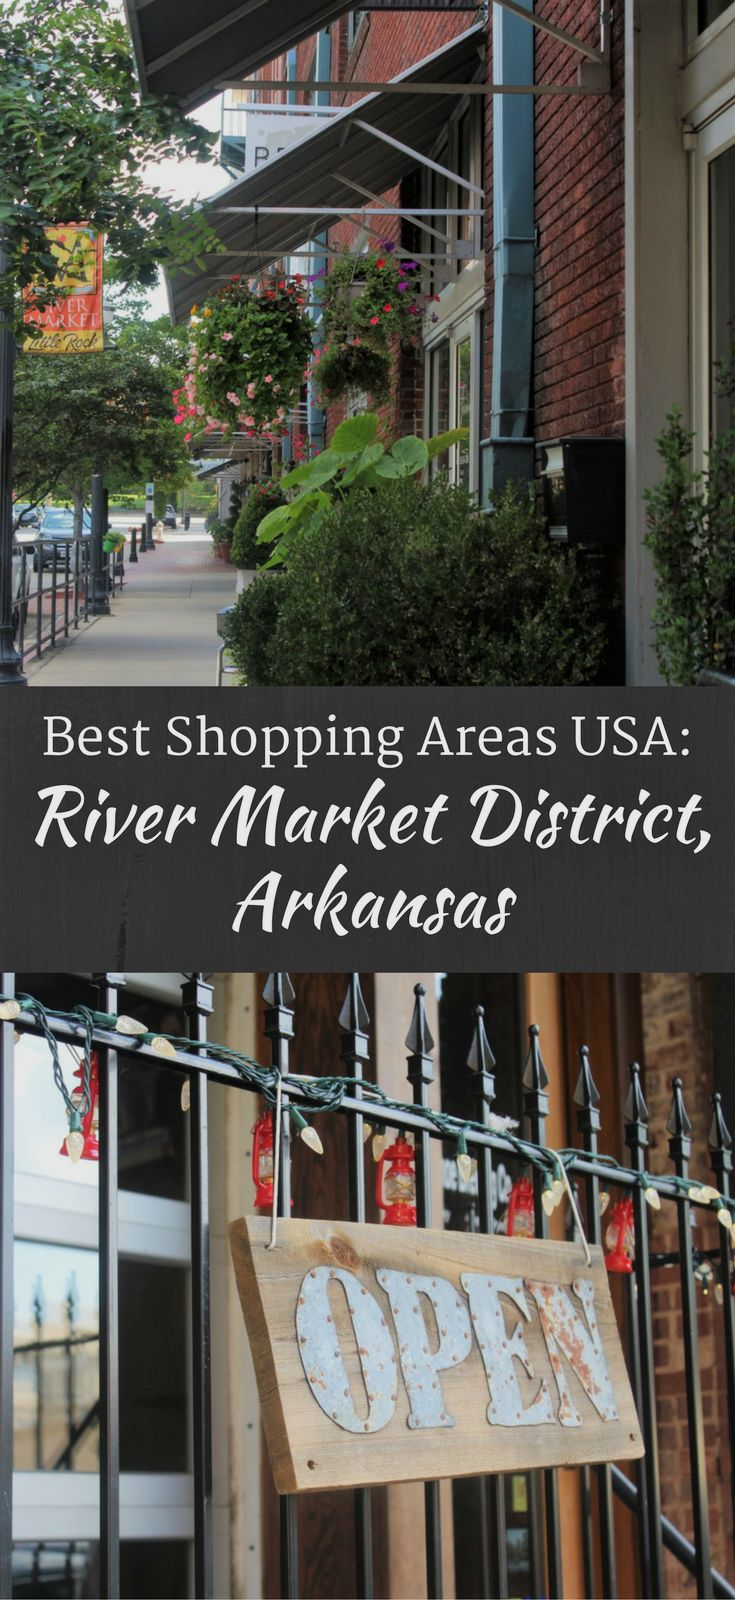 The River Market District is one of the top things to do in Little Rock, Arkansas. This guide focuses on what to see, where to eat, and where to shop till you drop (of course).